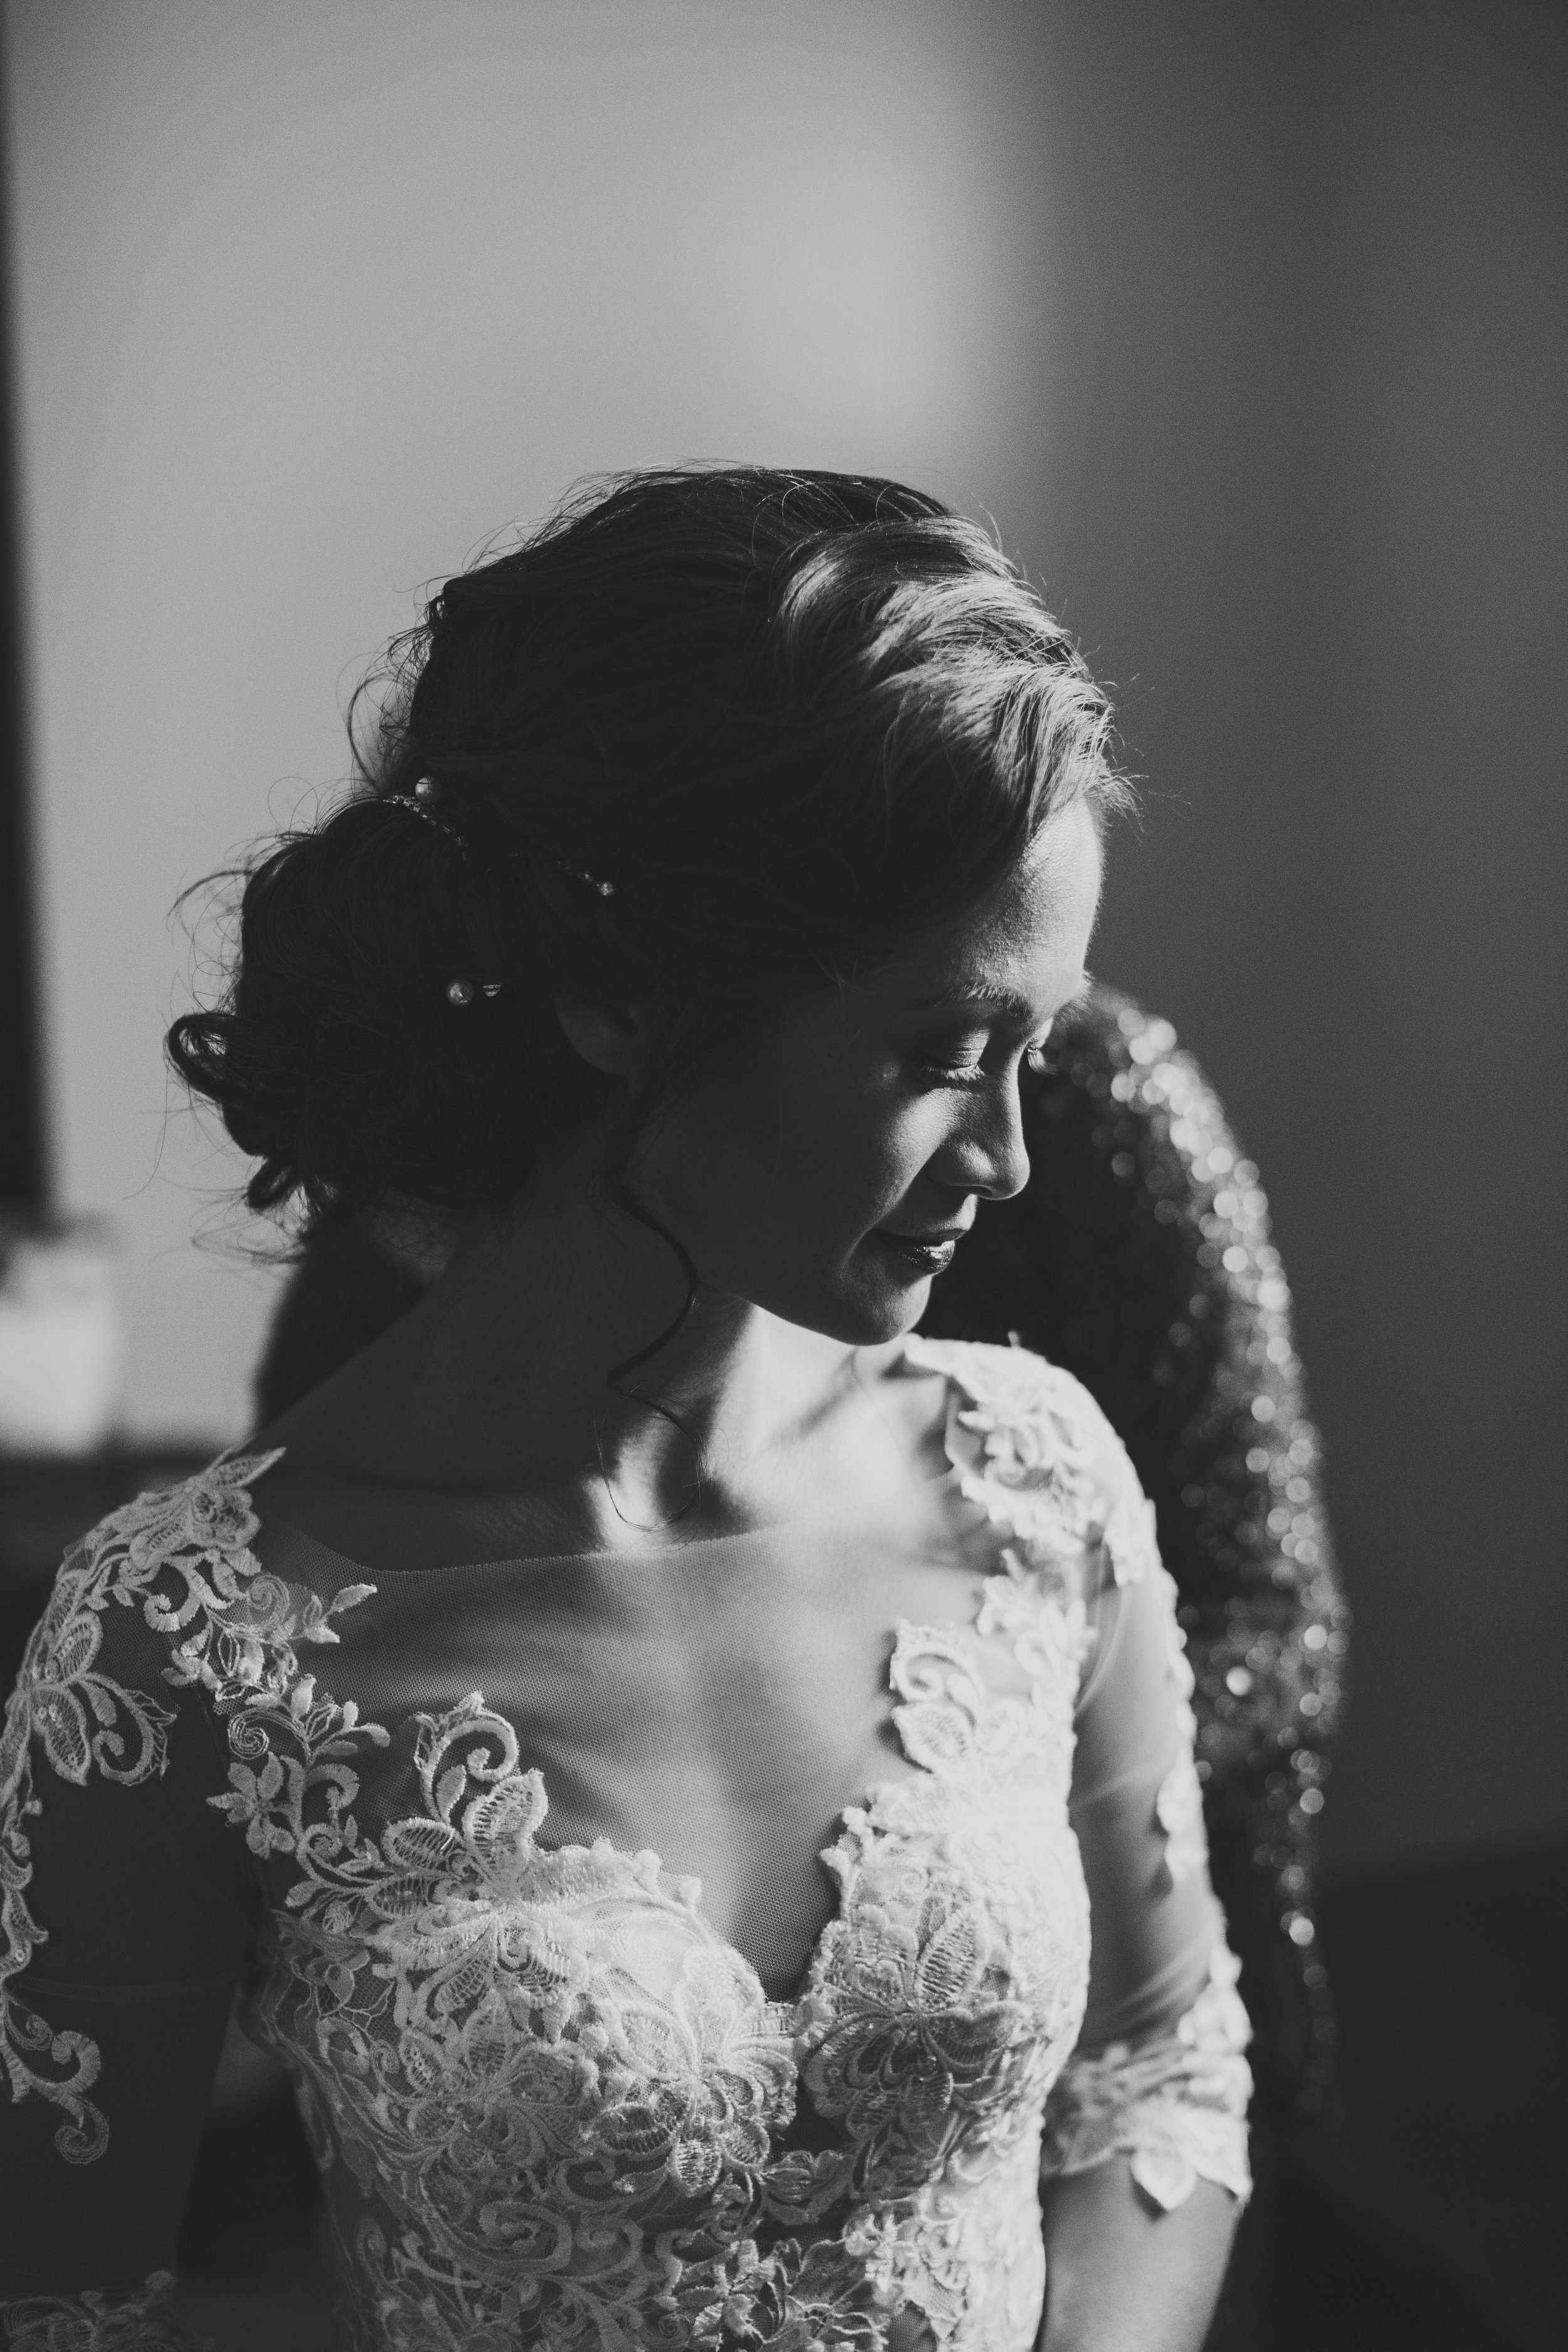 About us. - We have been in business for over 5 years and have shot over 100+ weddings. Highly trusted and recommended. Our focus is getting great images and video that tell your story and accurately captures your wedding day! We never want your wedding day to feel like a production. We truly believe in capturing authentic emotion as non intrusive as possible.